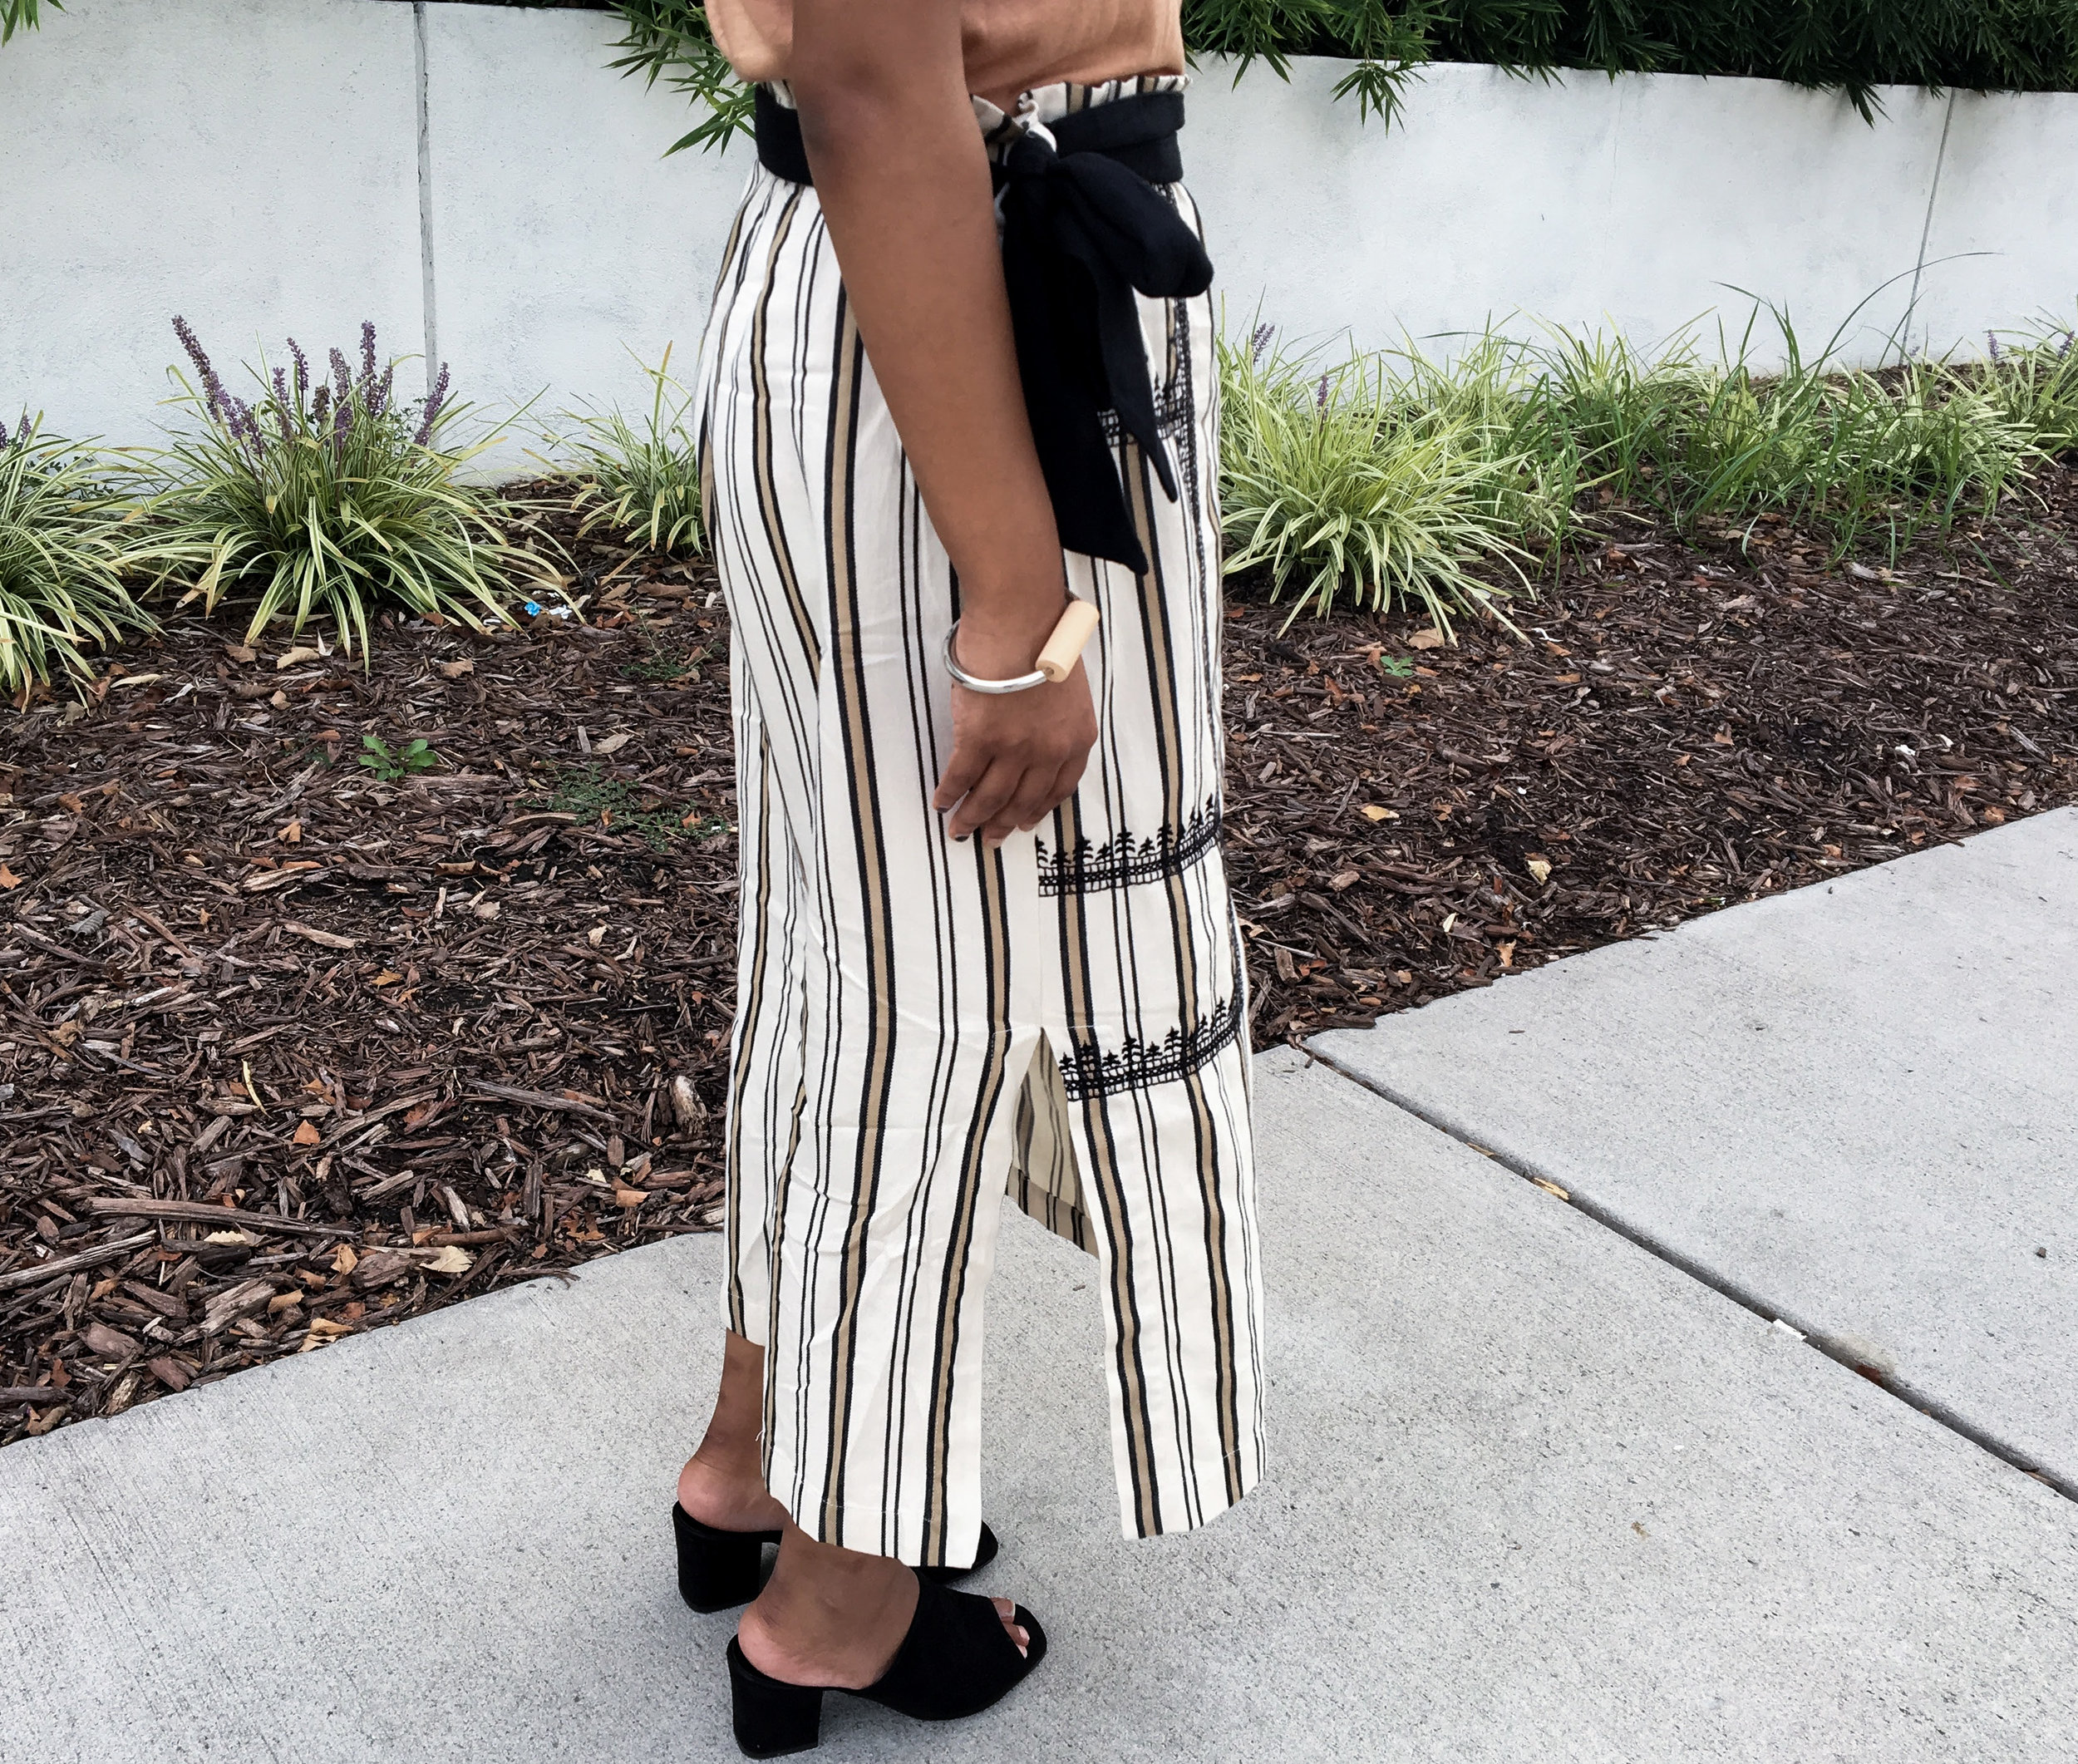 Statement Midi Skirt and Charles Keith Suede Mules